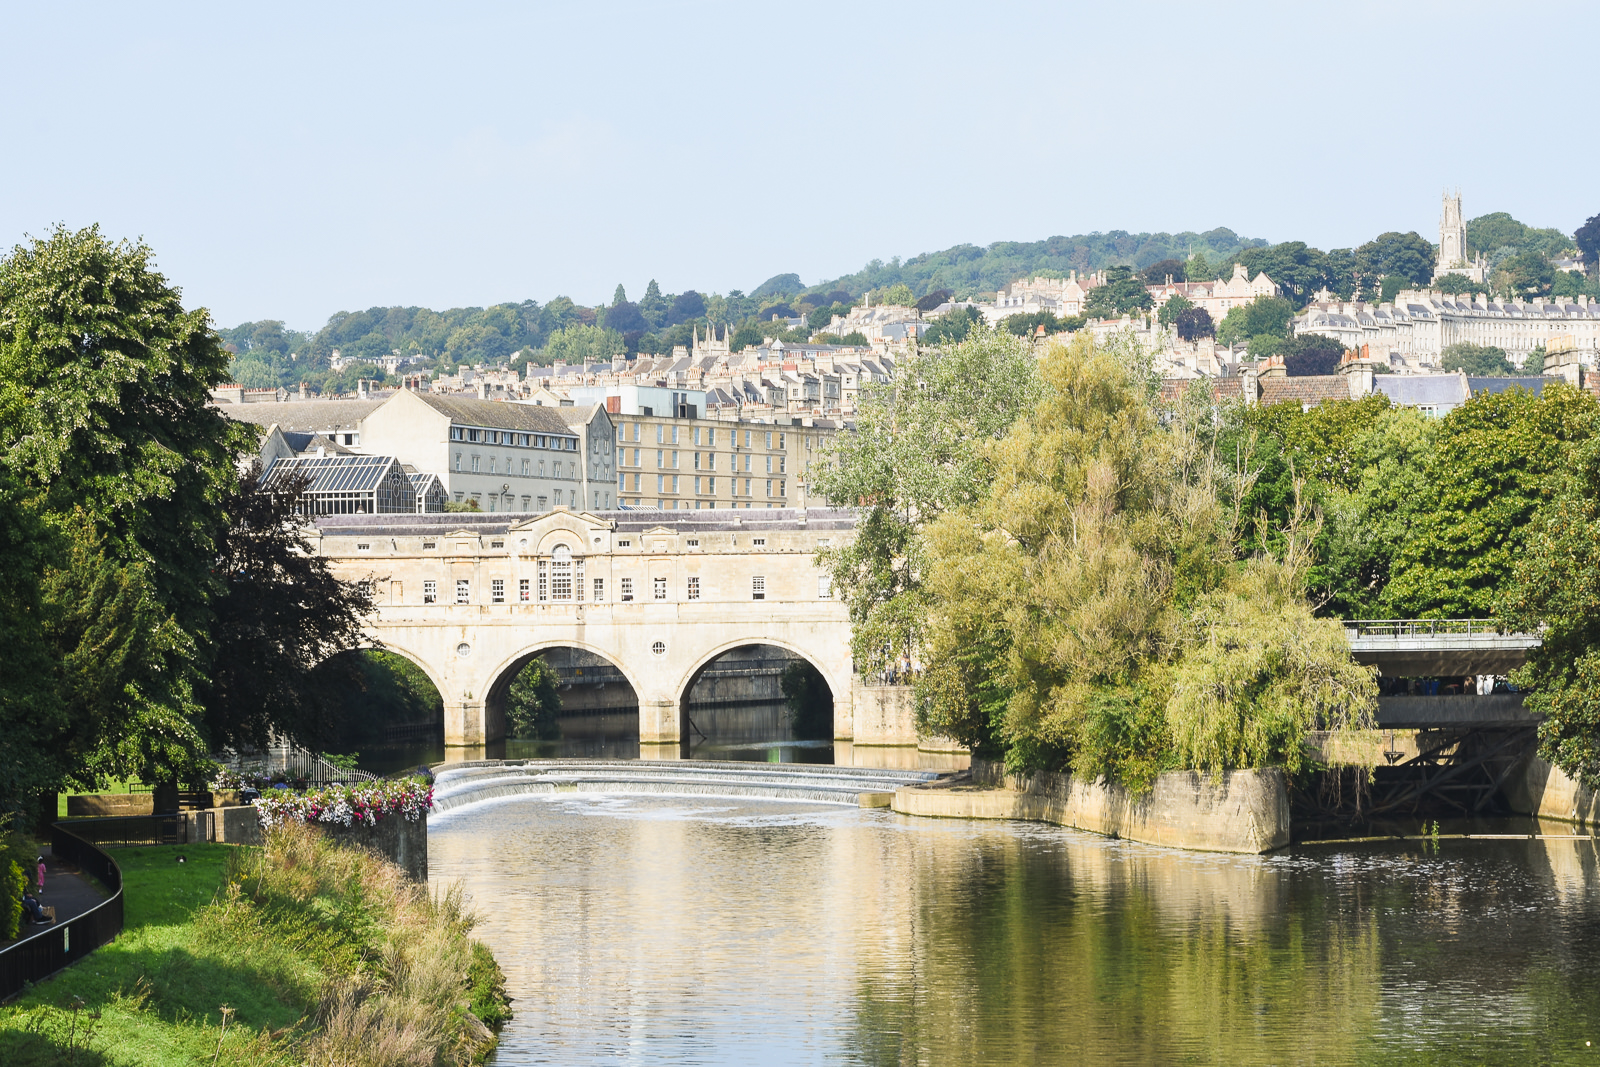 Views of the River Avon, Pulteney Bridge and the hills surrounding Bath